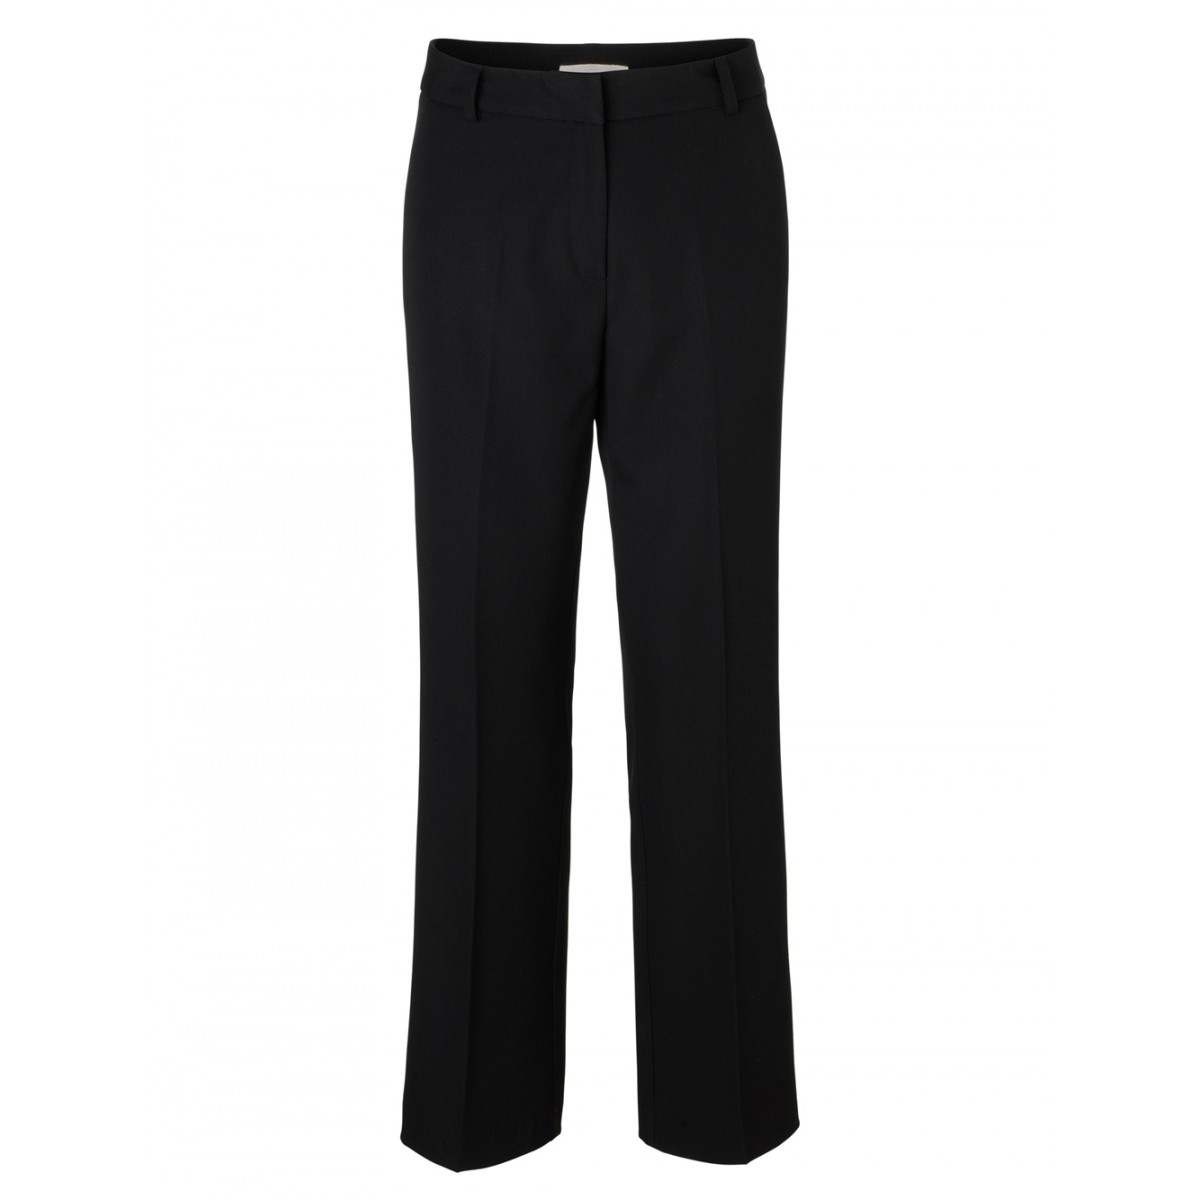 Rosemunde 4412-010 Trousers Black-34